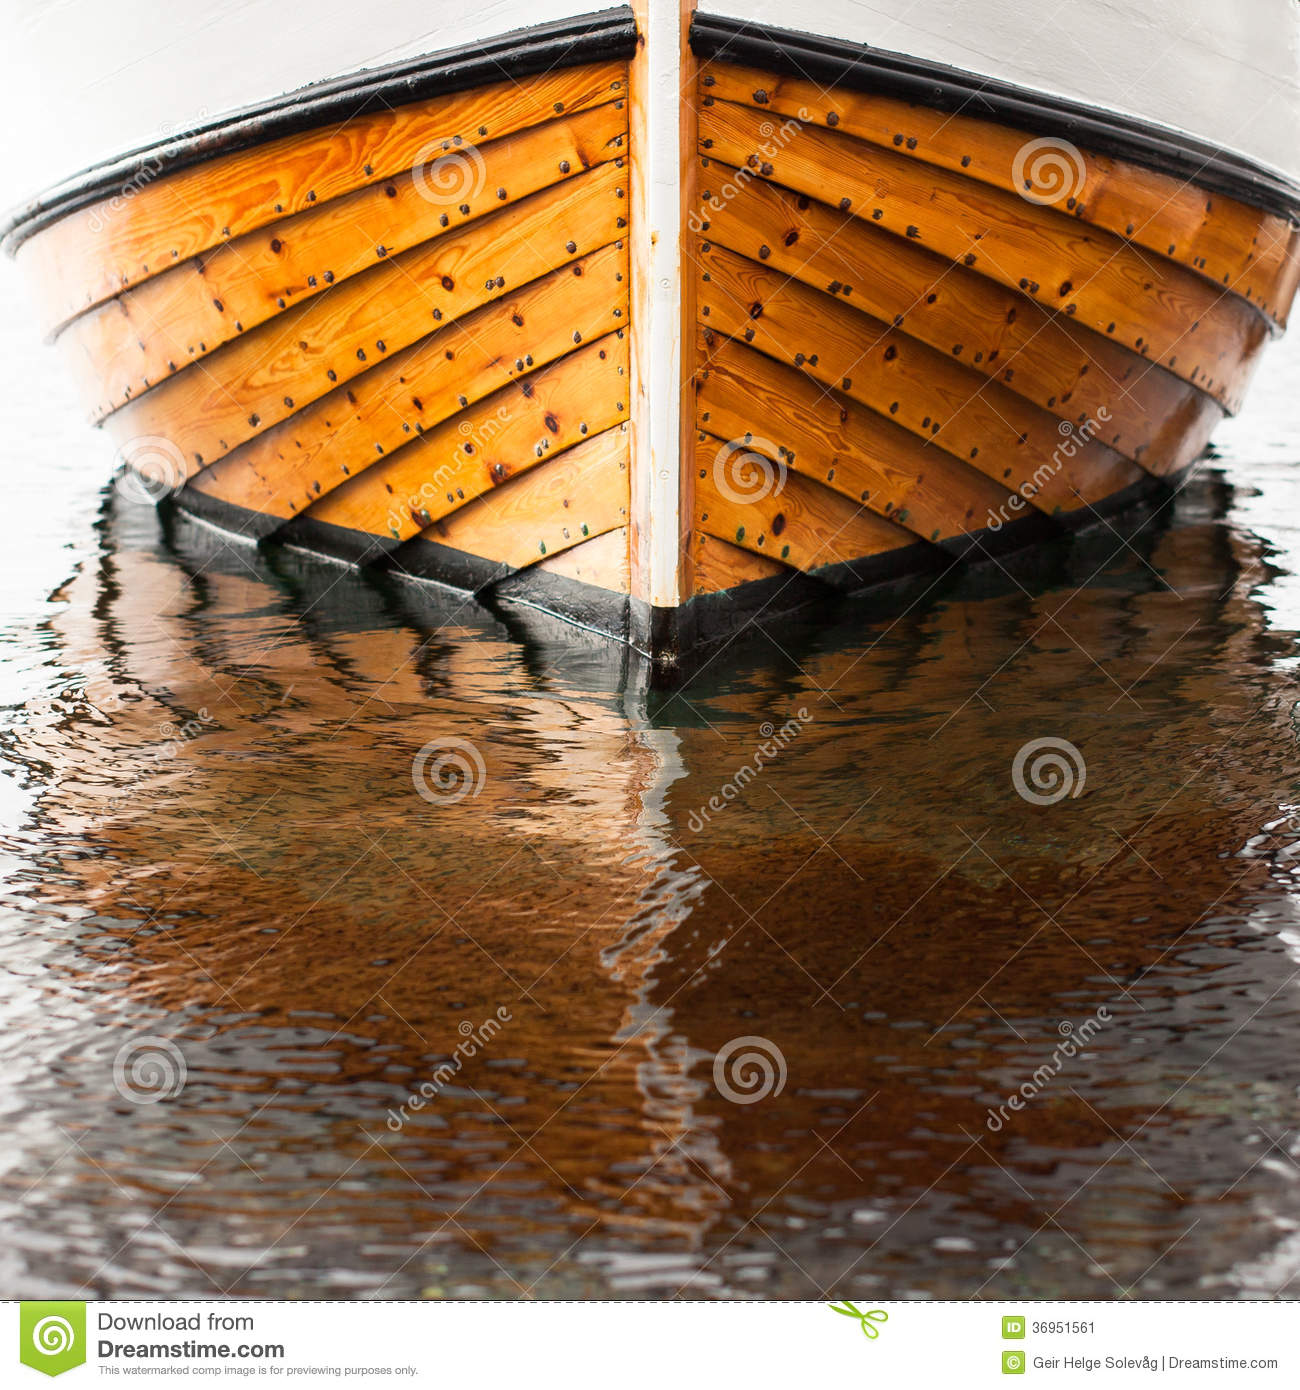 Traditional Wooden Fisher Boat From Norway Stock Image - Image of symmetry, fisher: 36951561